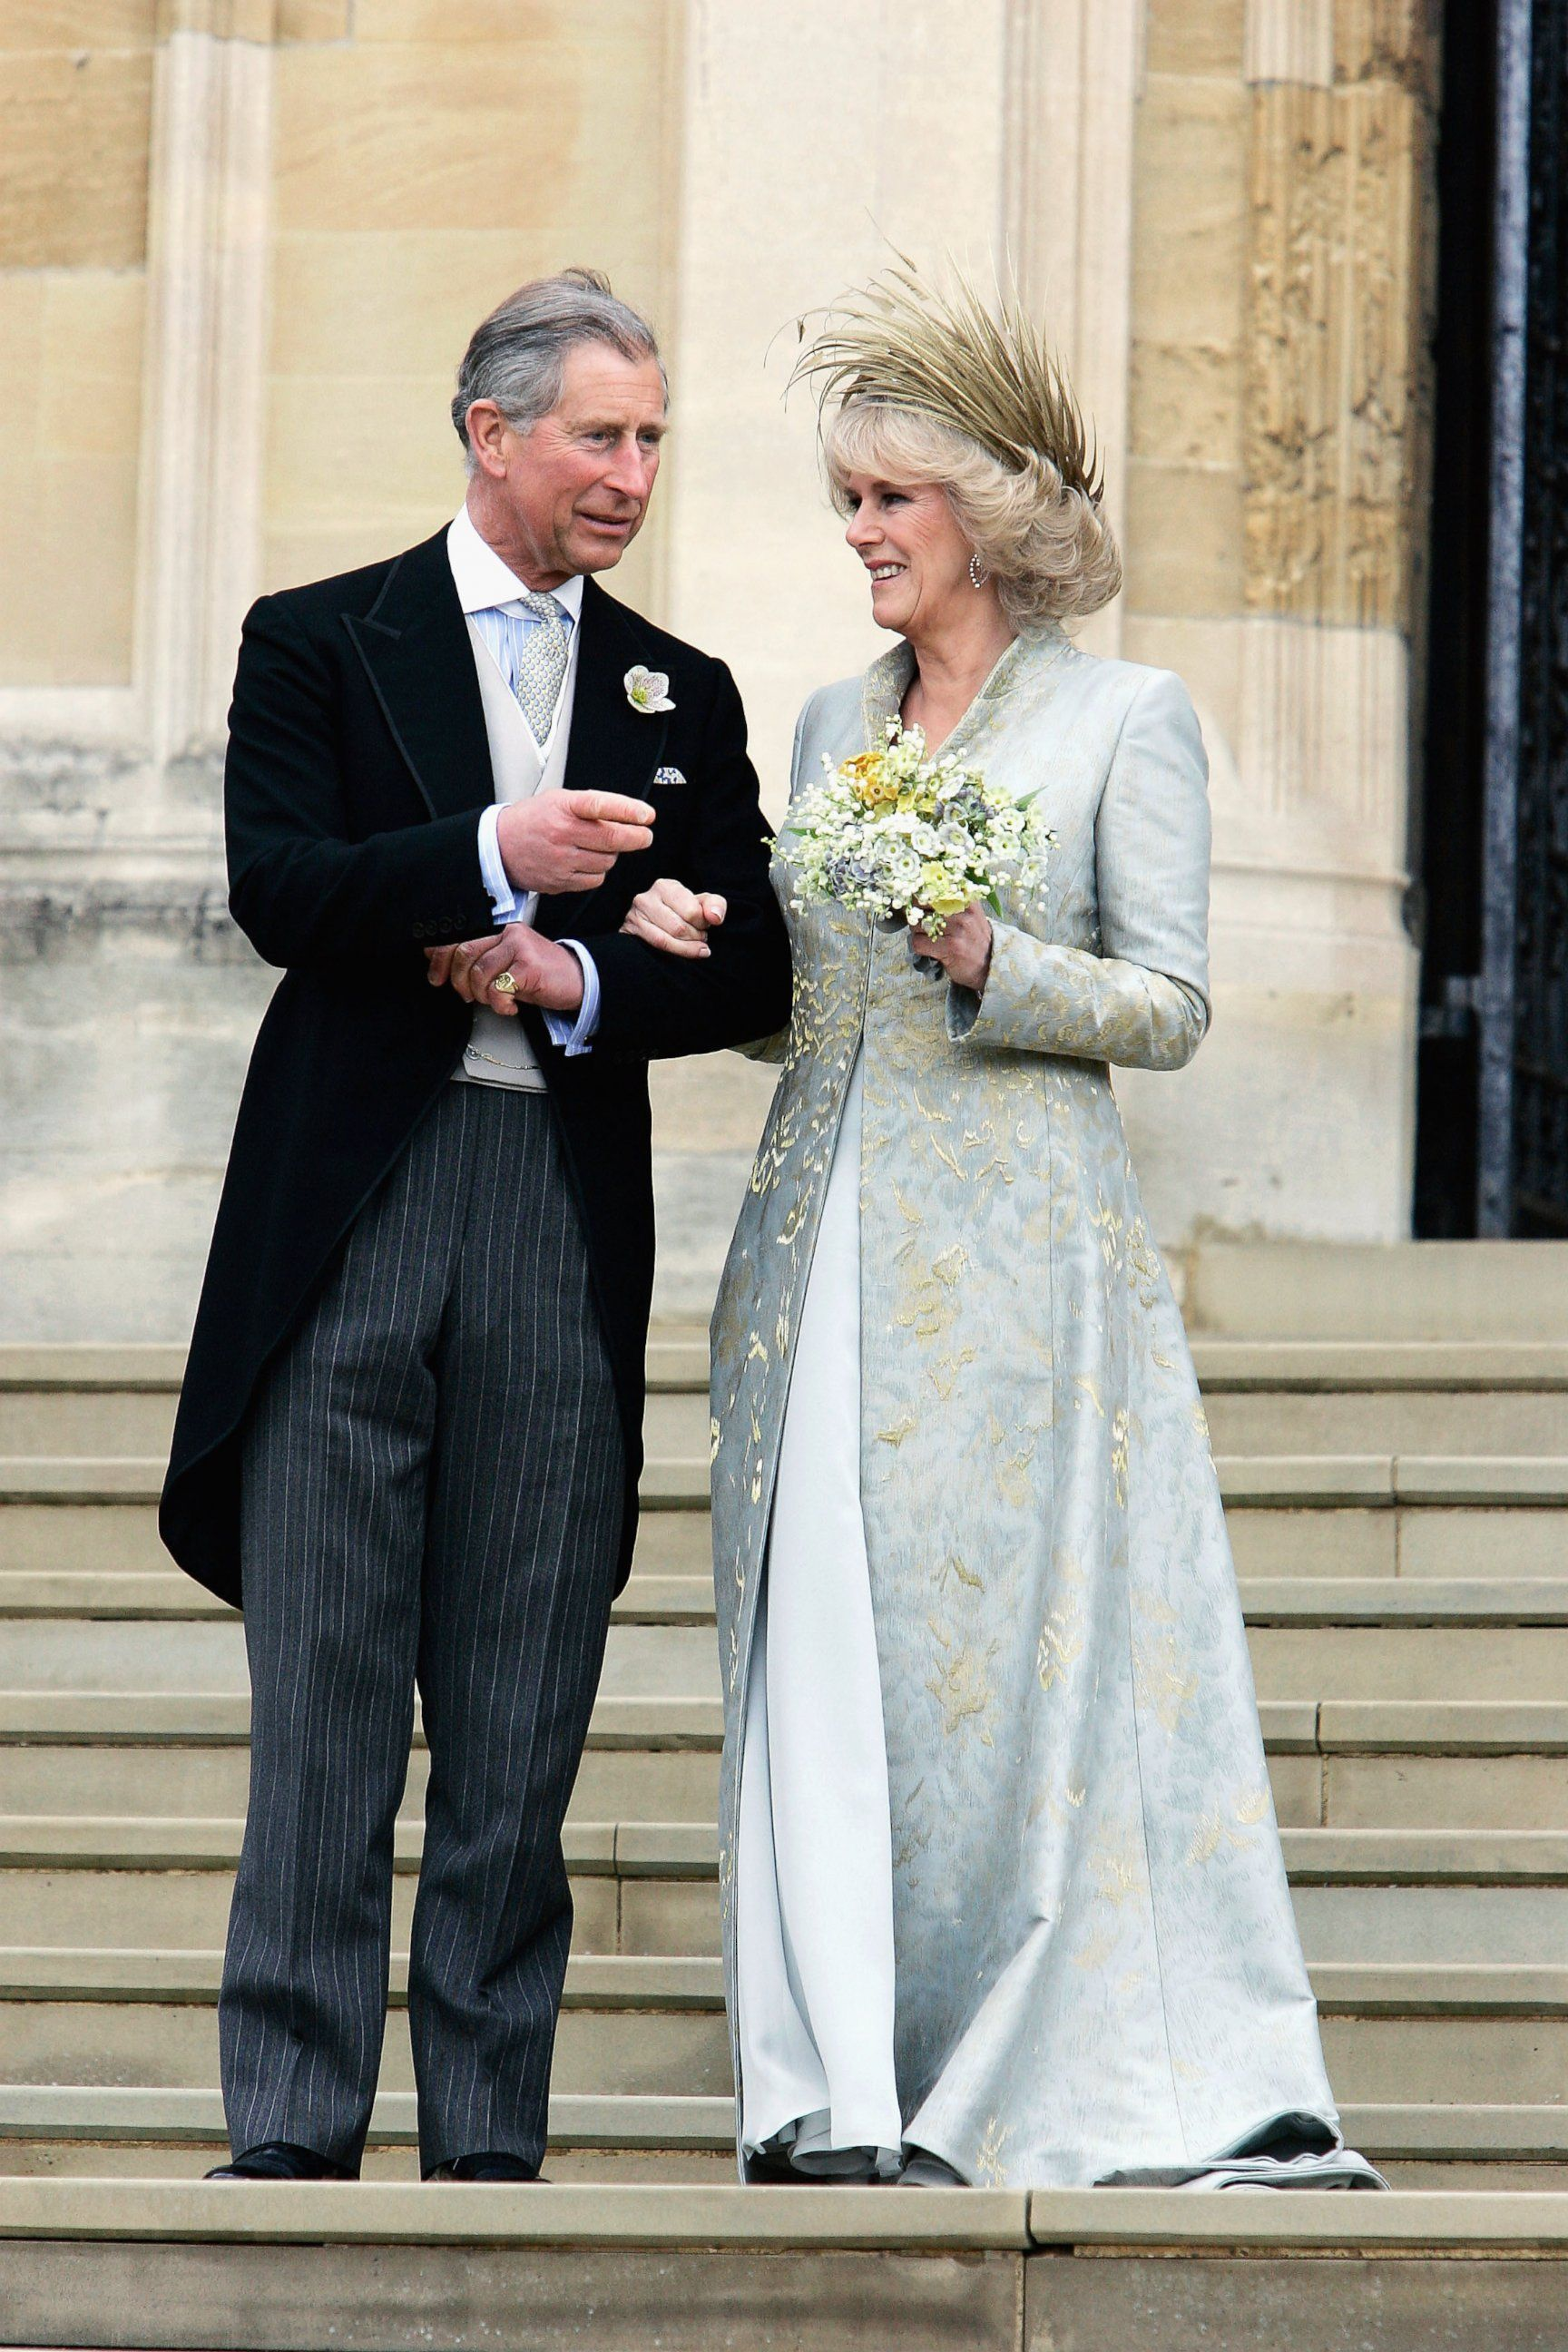 Religious wedding of Charles, Prince of Wales and ms